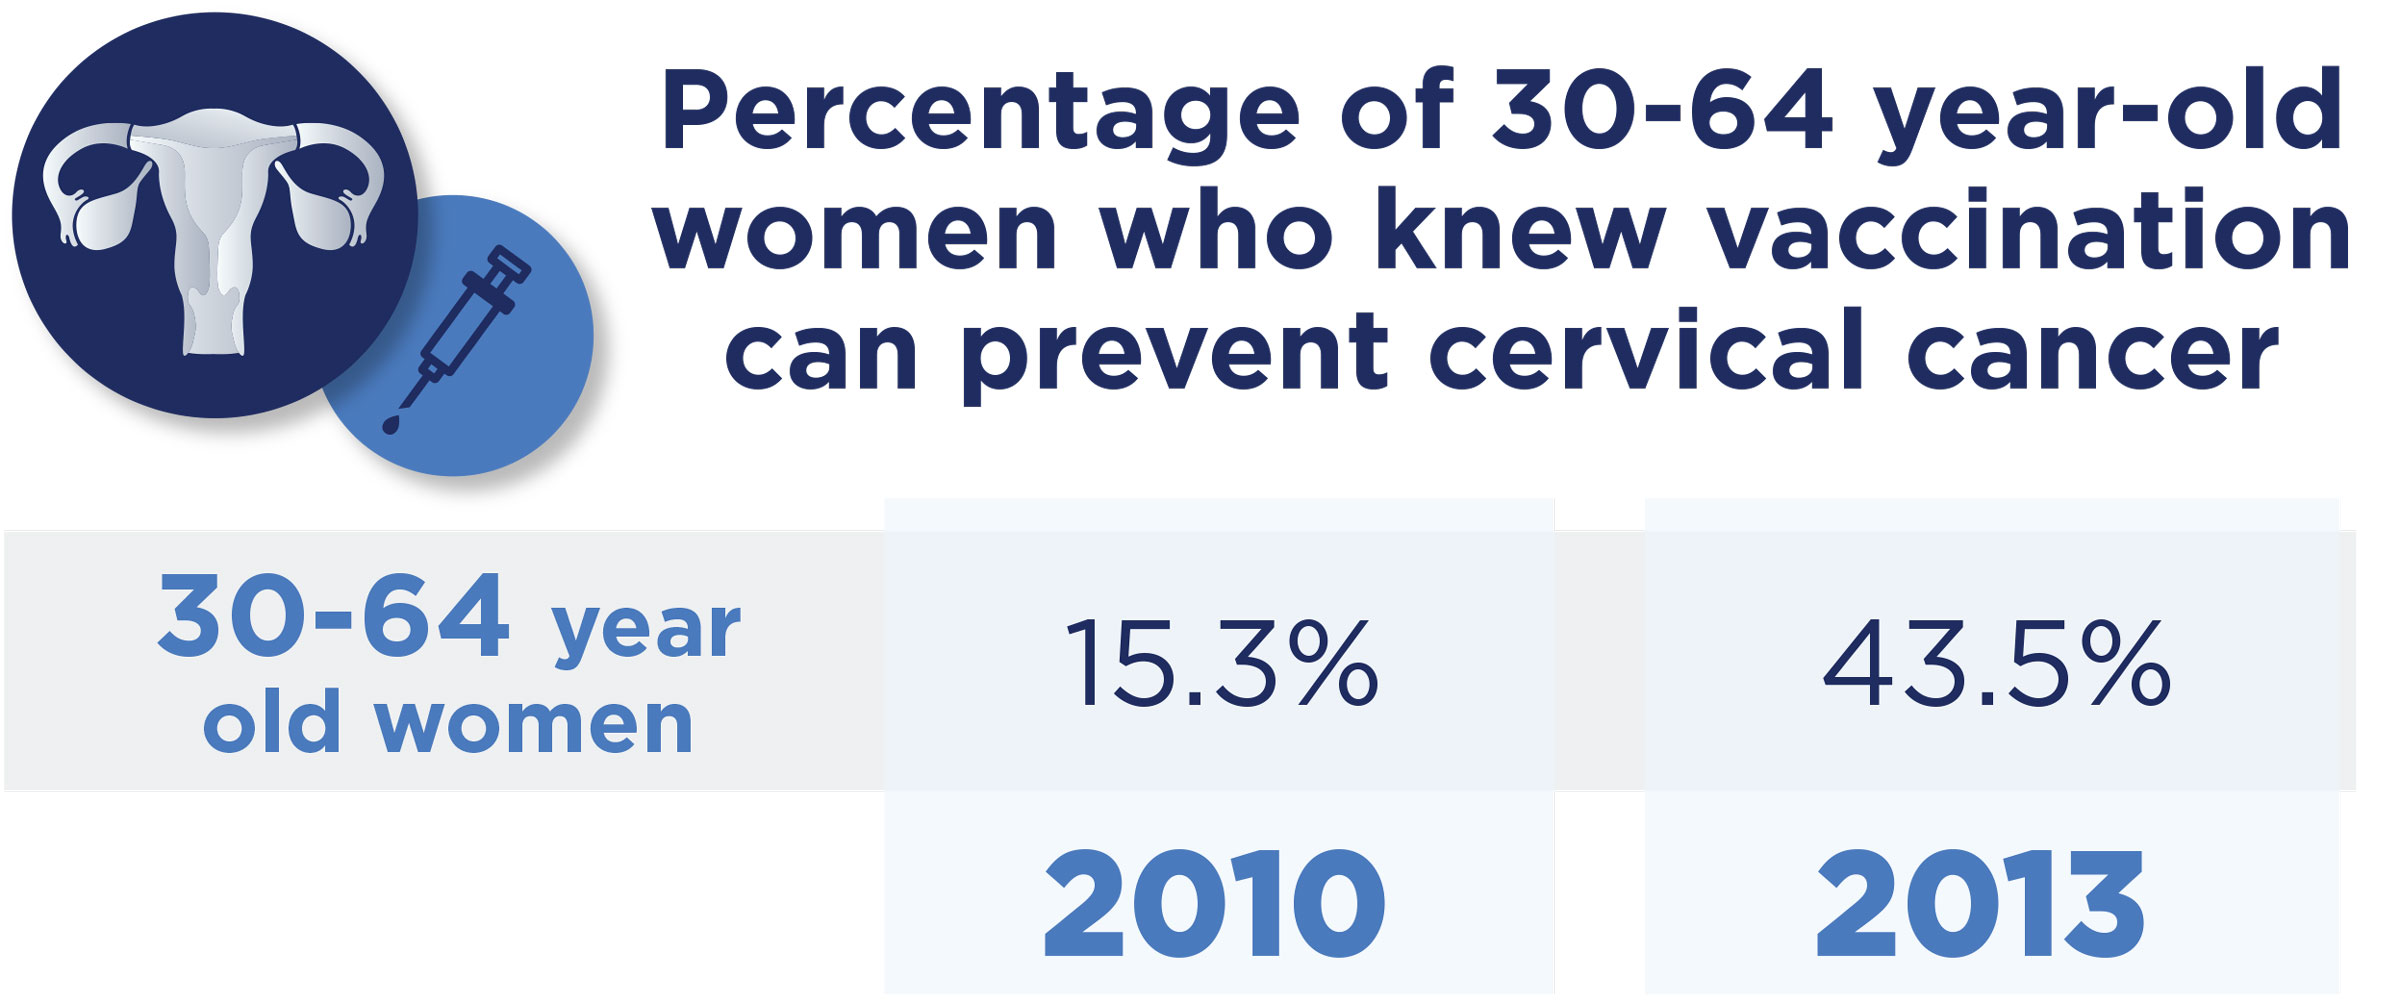 Percentage of 30-64 year-old women who knew vaccination can prevent cervical cancer.